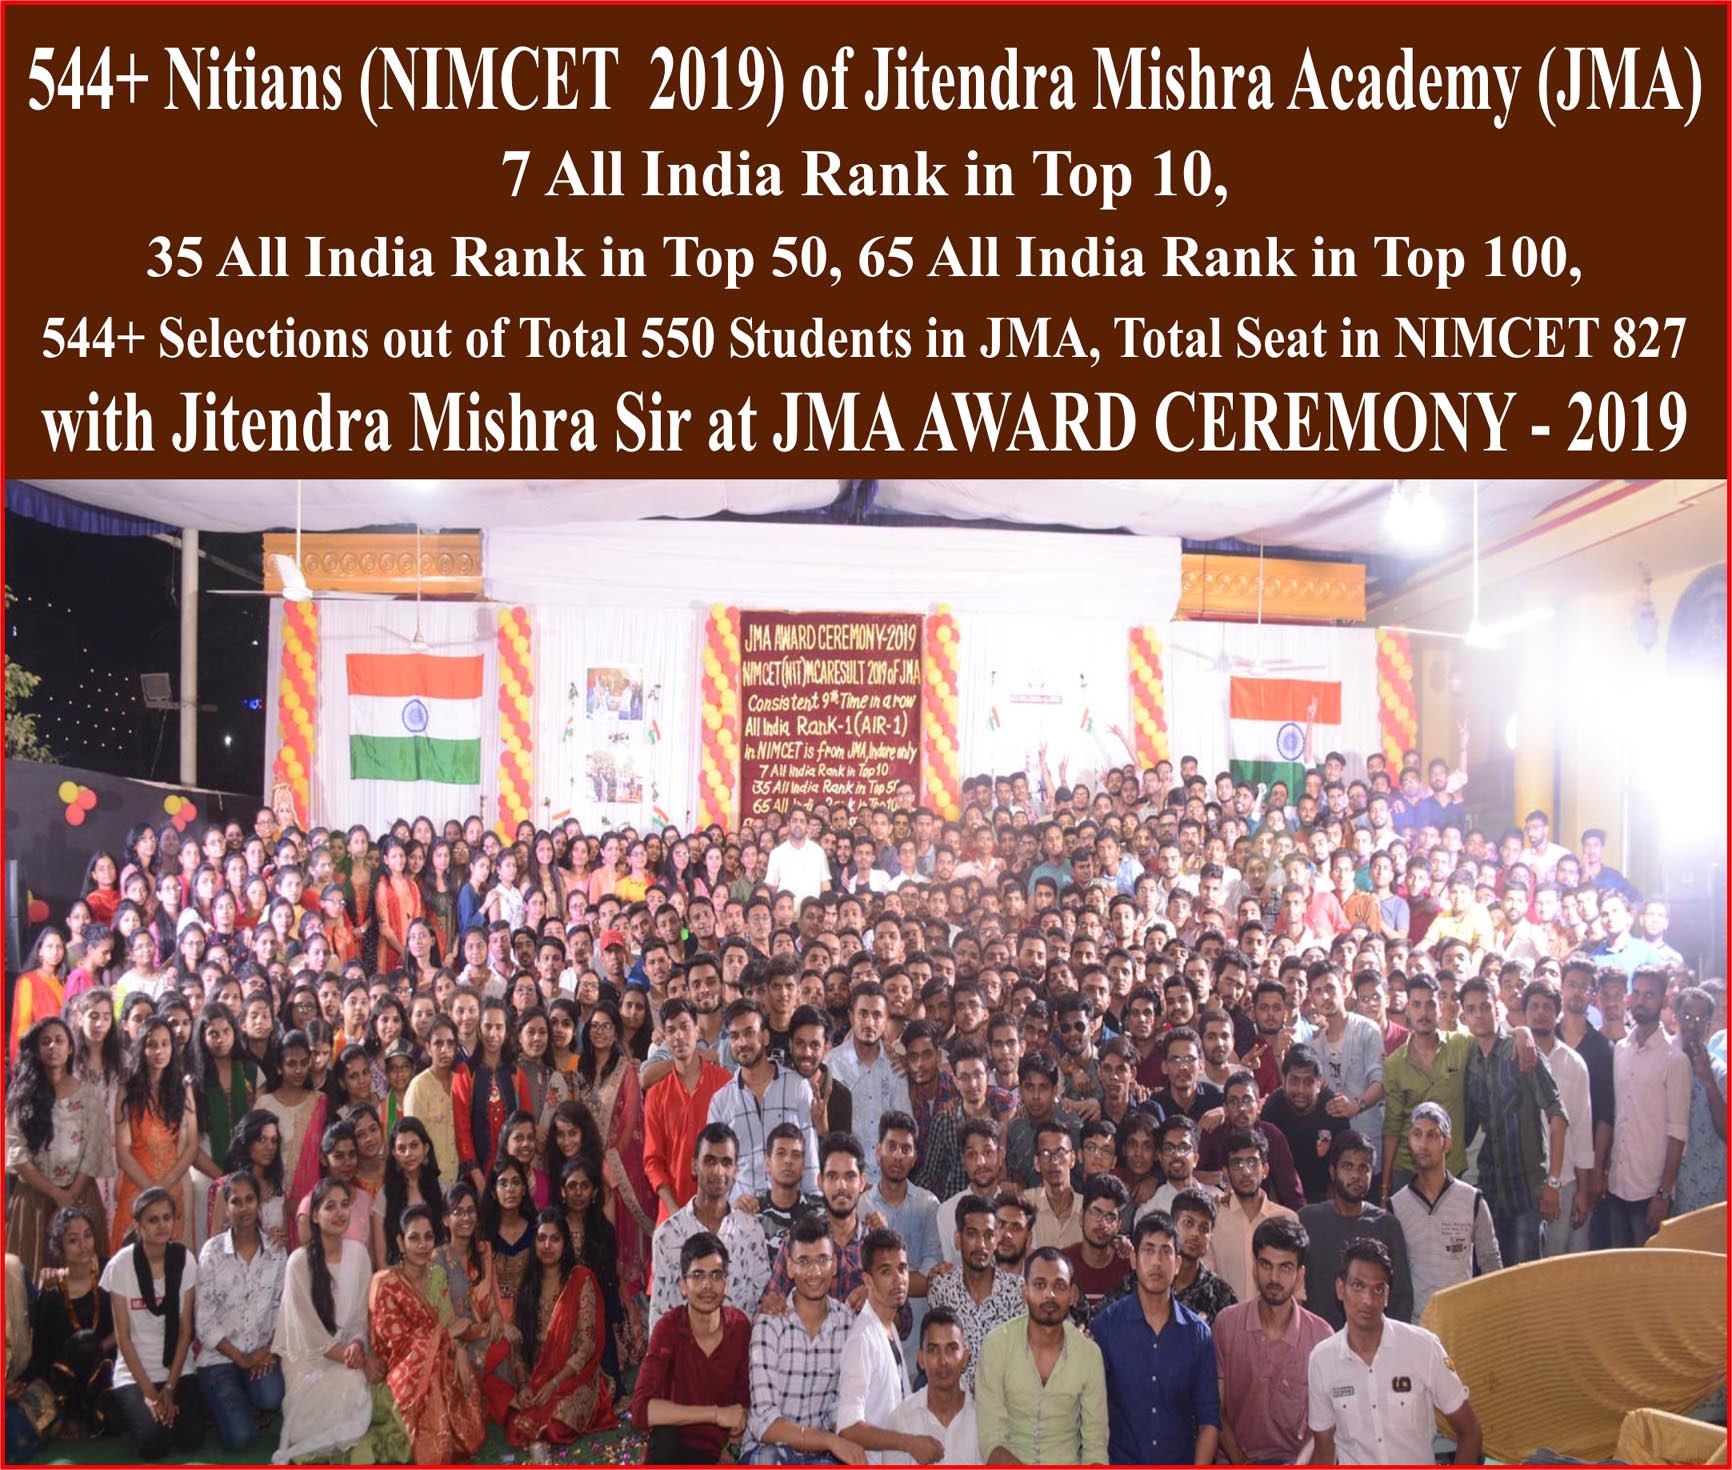 NIMCET 2019 PHOTO FOR WEB